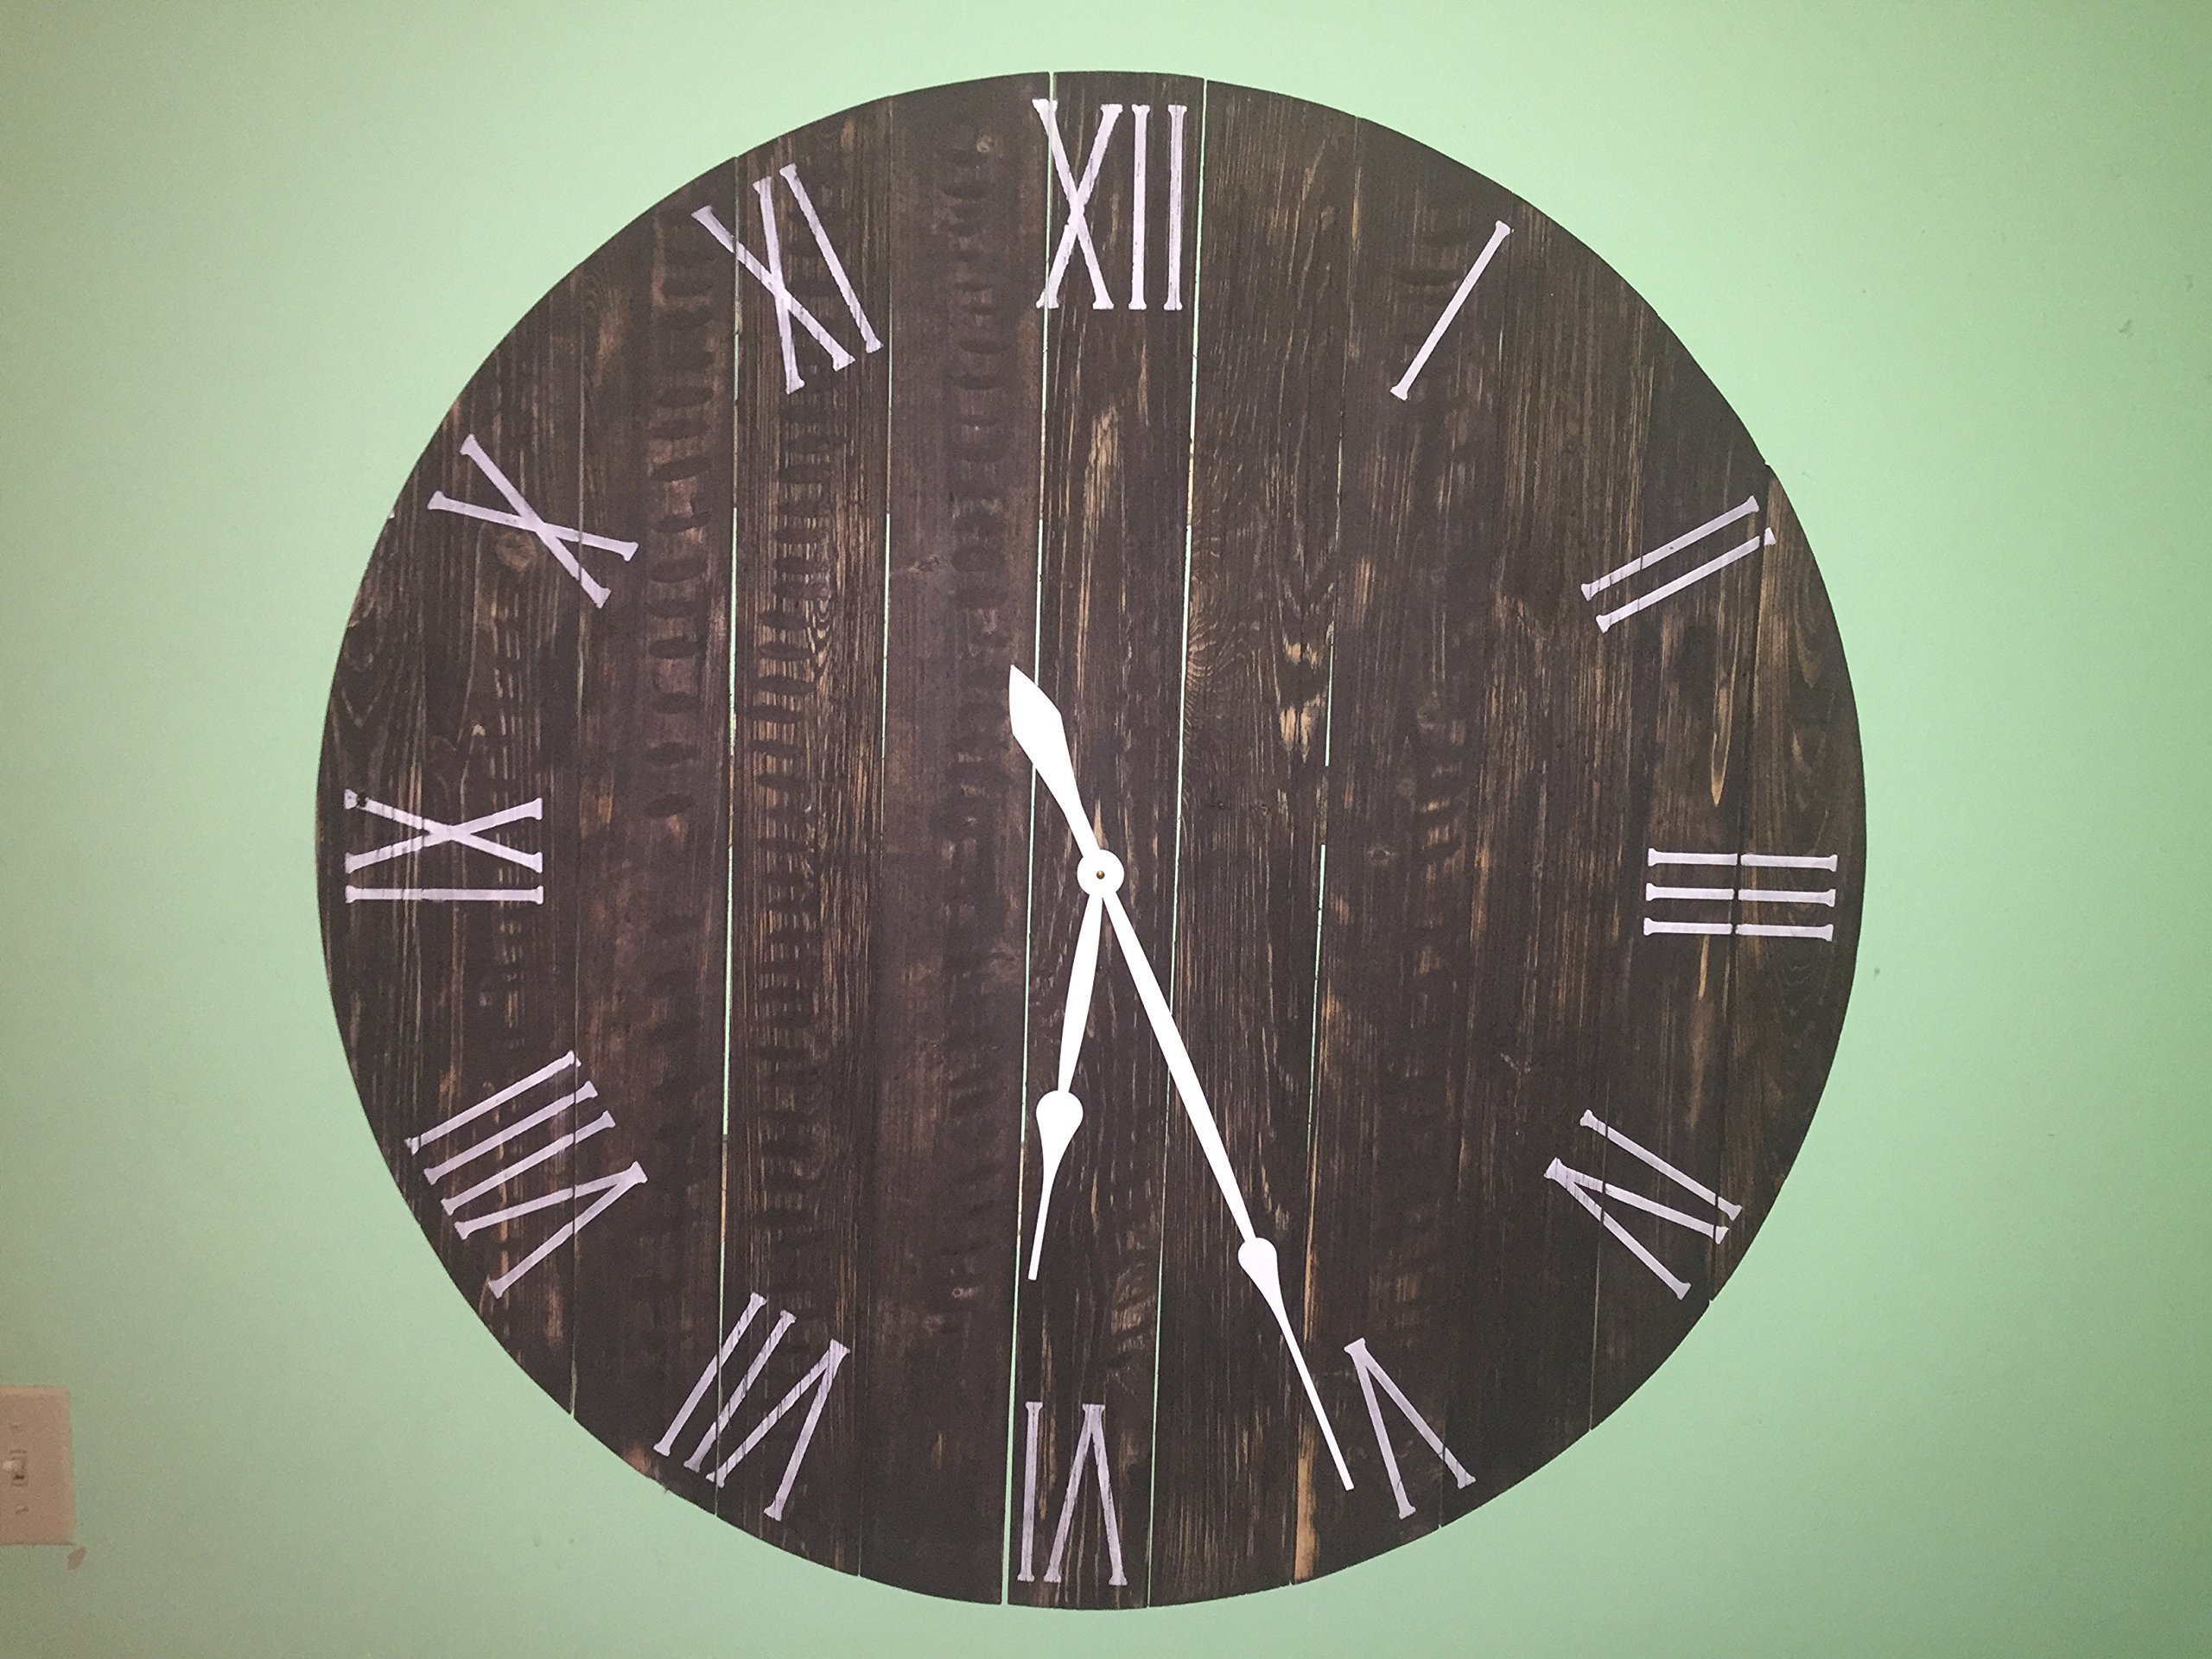 Handmade Large Rustic Wall Clock -40'' diameter made of real wood add elegant old time feel to the reclaimed wood